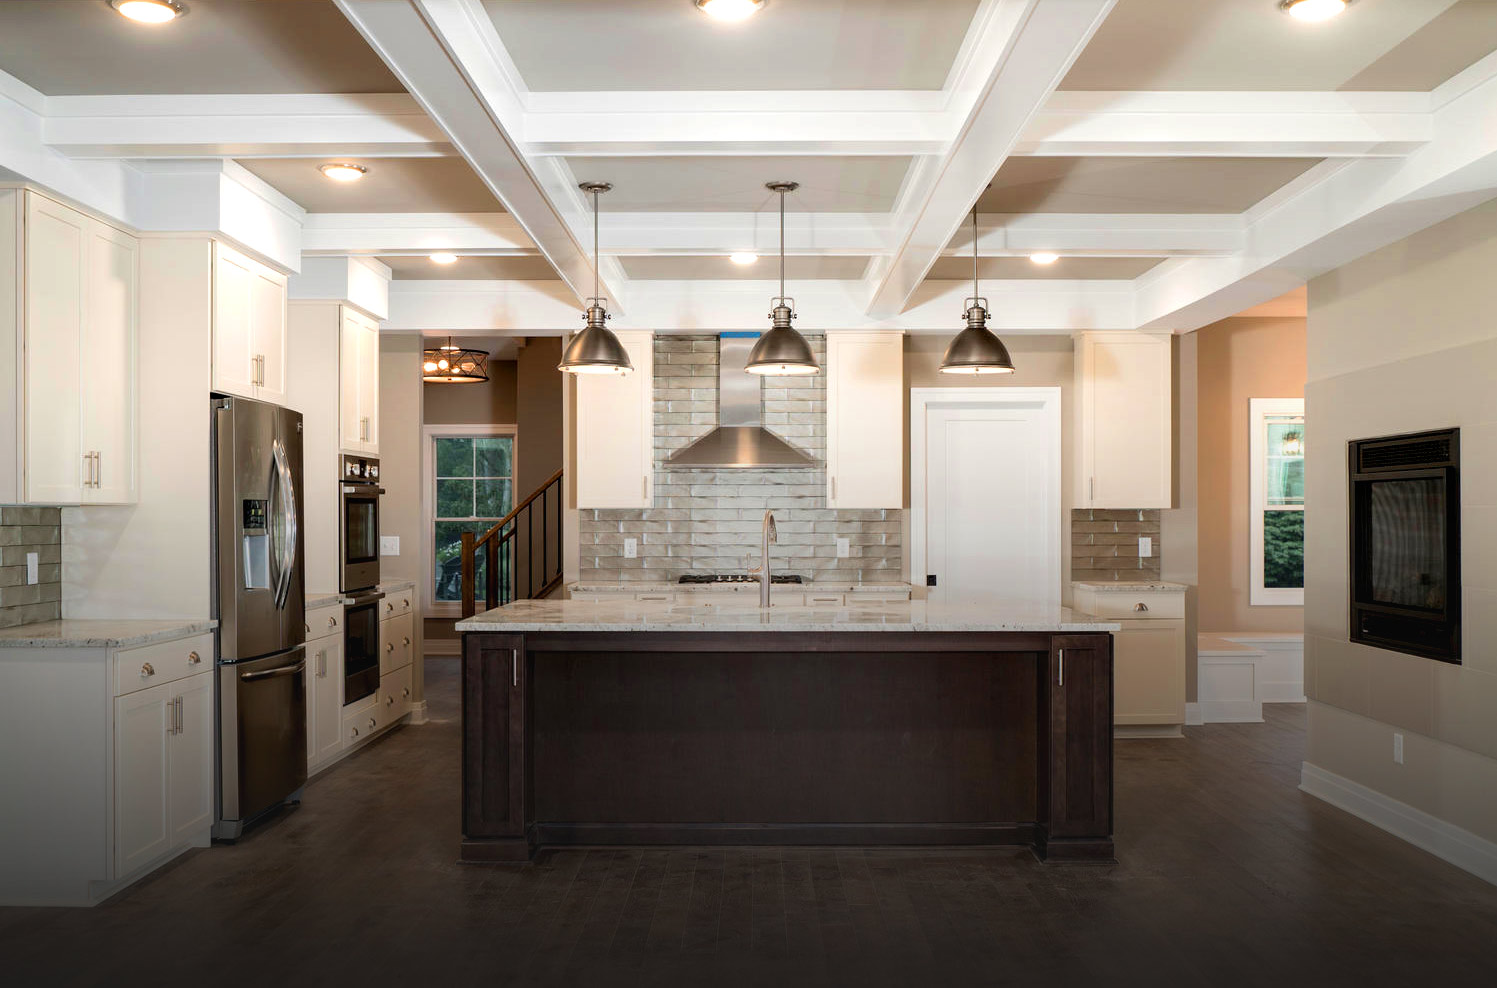 New Home Builders | Custom Home Builders Western NY ... Raise Mobile House Design on looking for a house, train house, range house, cut house, lift house, bluff house, read house, shape house, make house, root house,